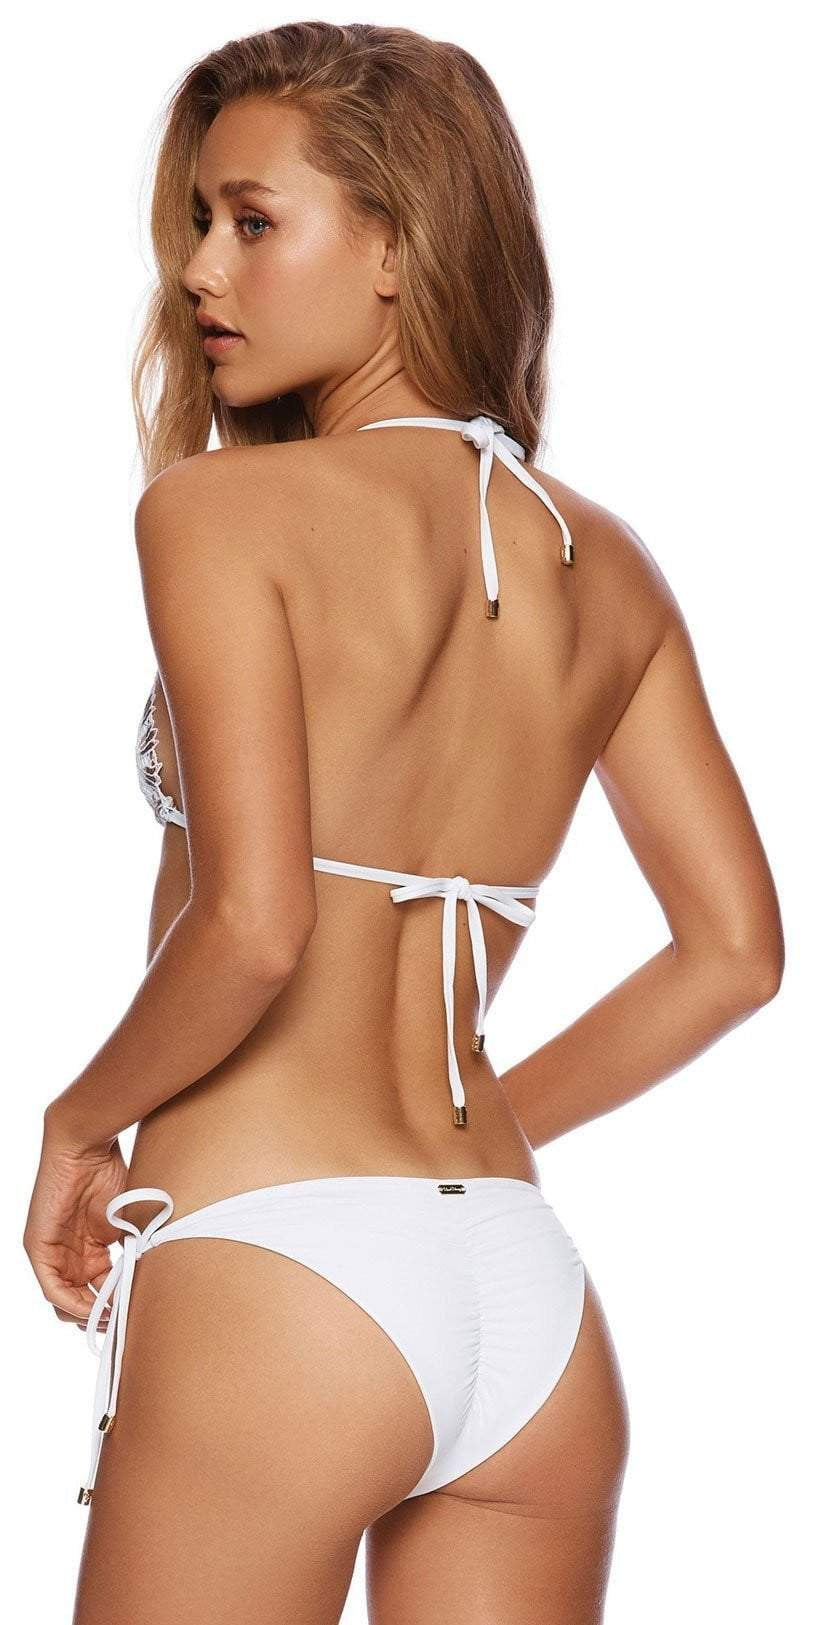 Beach Bunny Wedding Belle Tie Side Bikini Bottom B19127B1 WHTE: